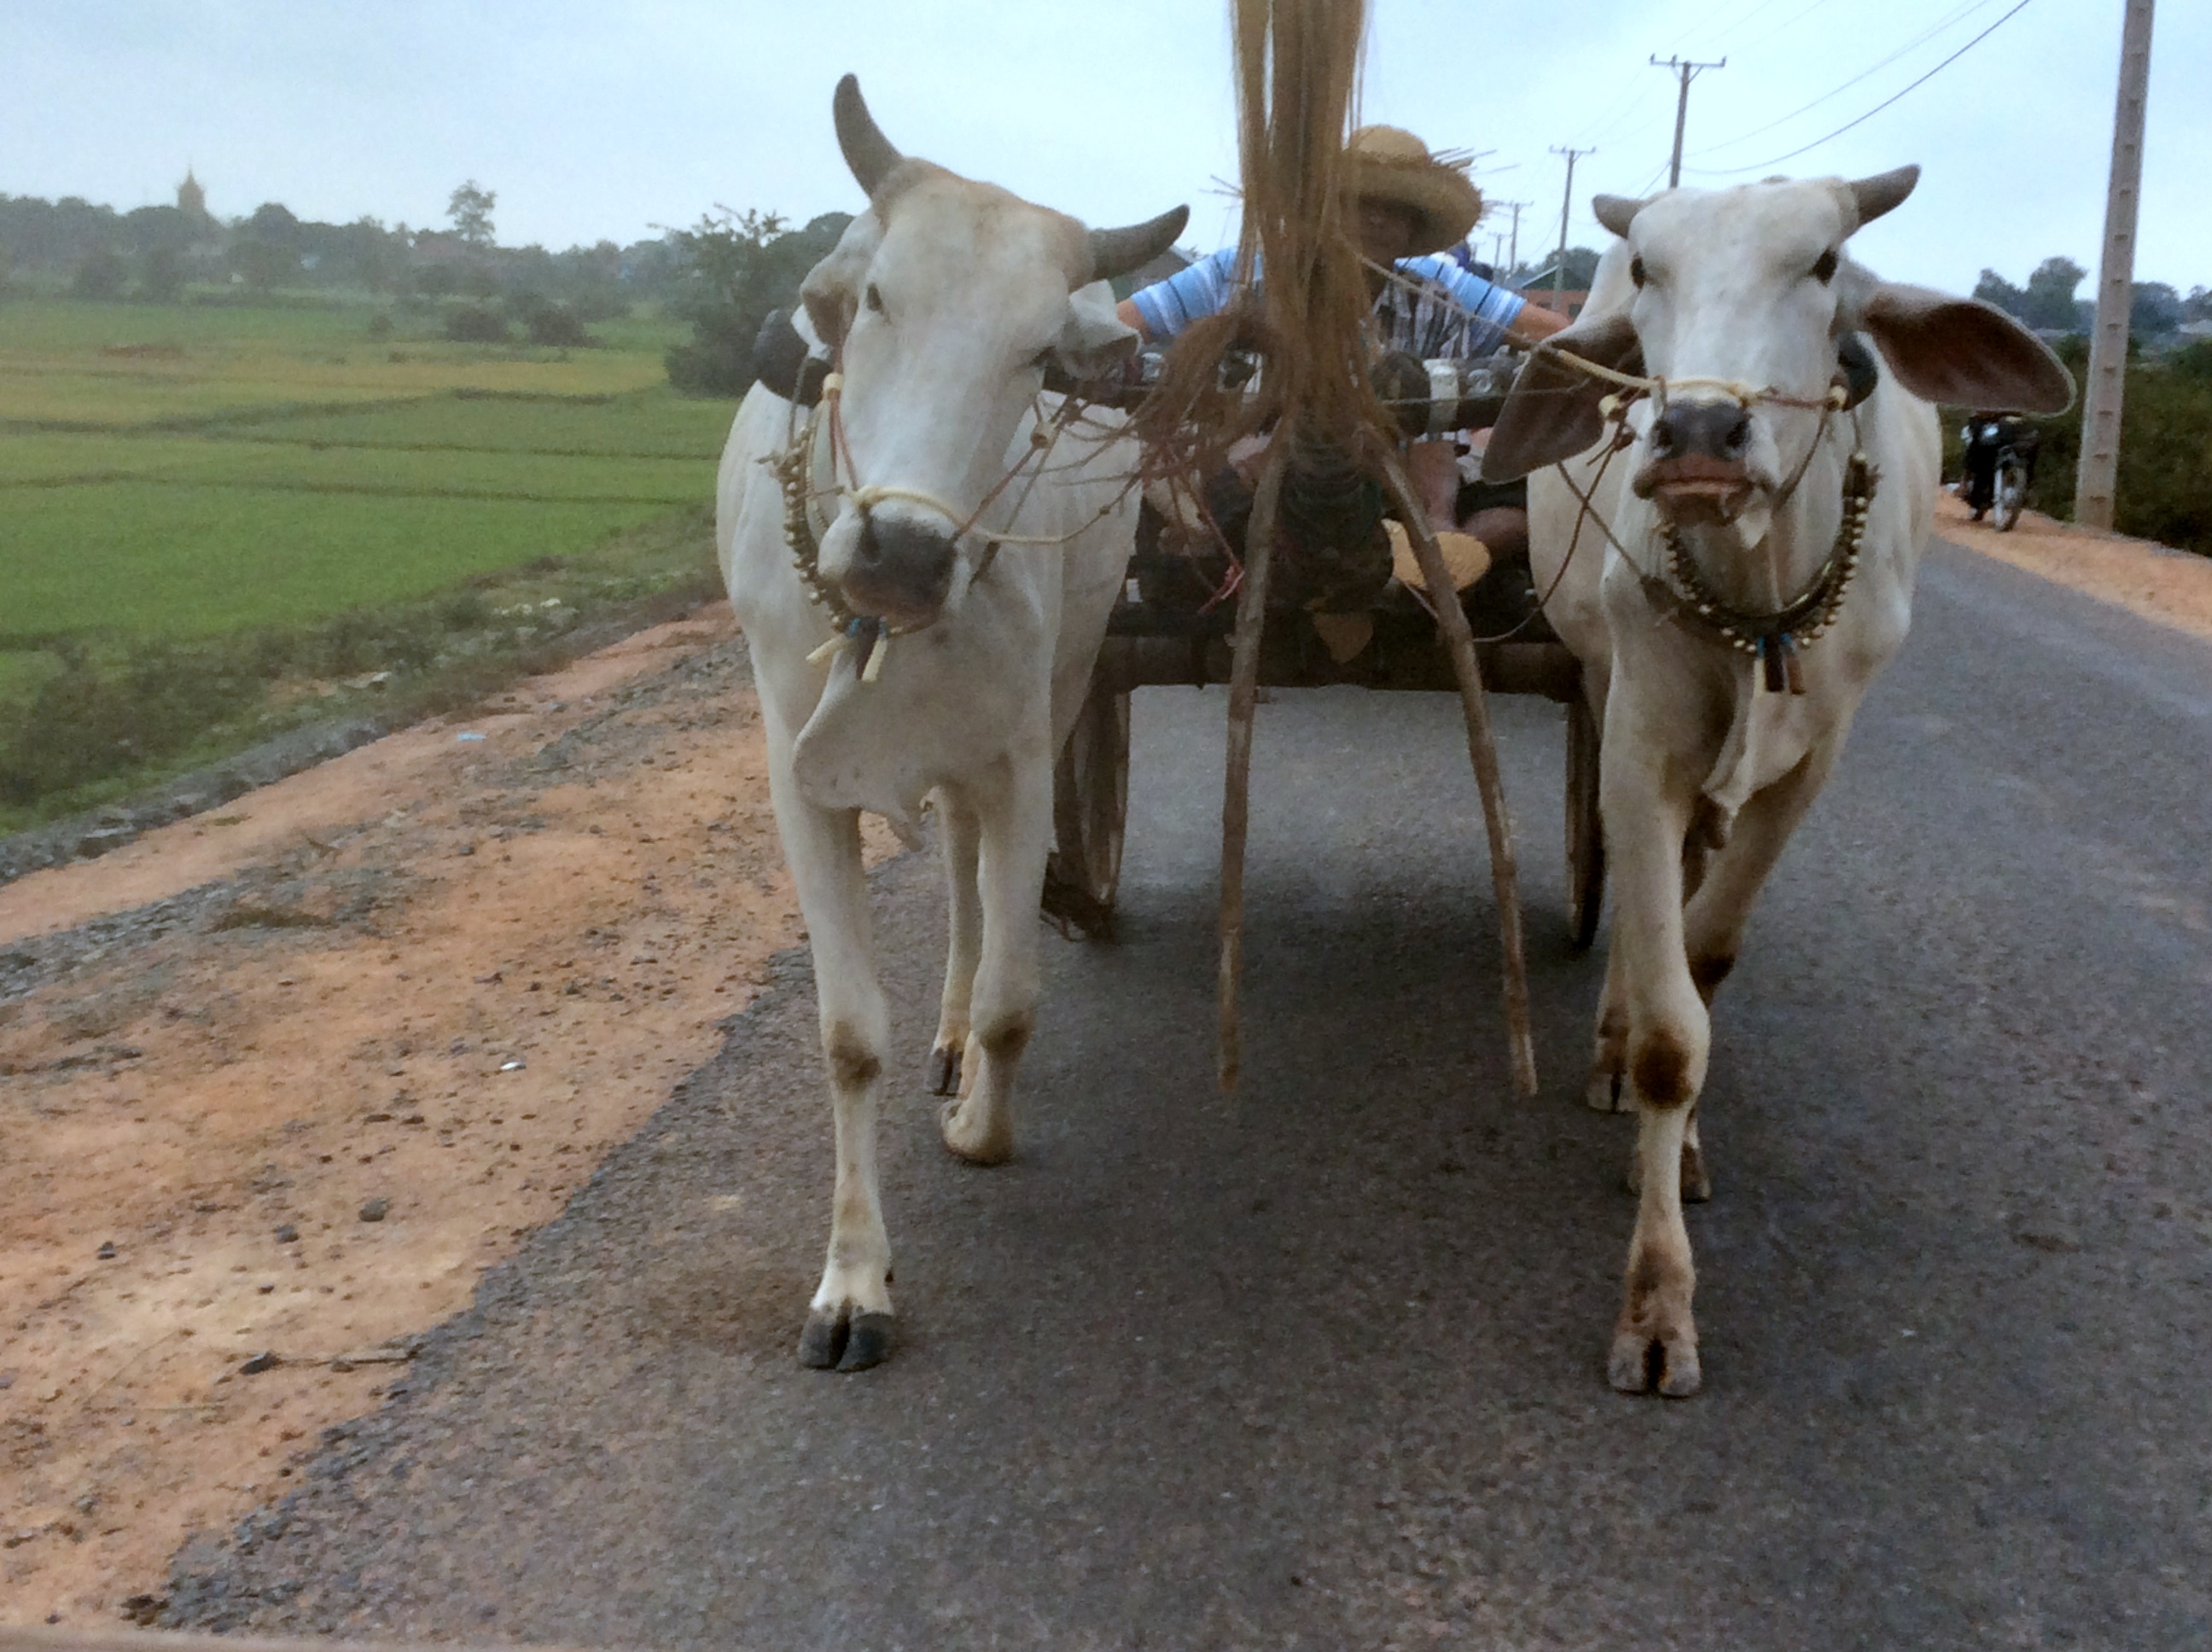 A view of the Cambodian countryside from the oxcart during Mekong River cruise